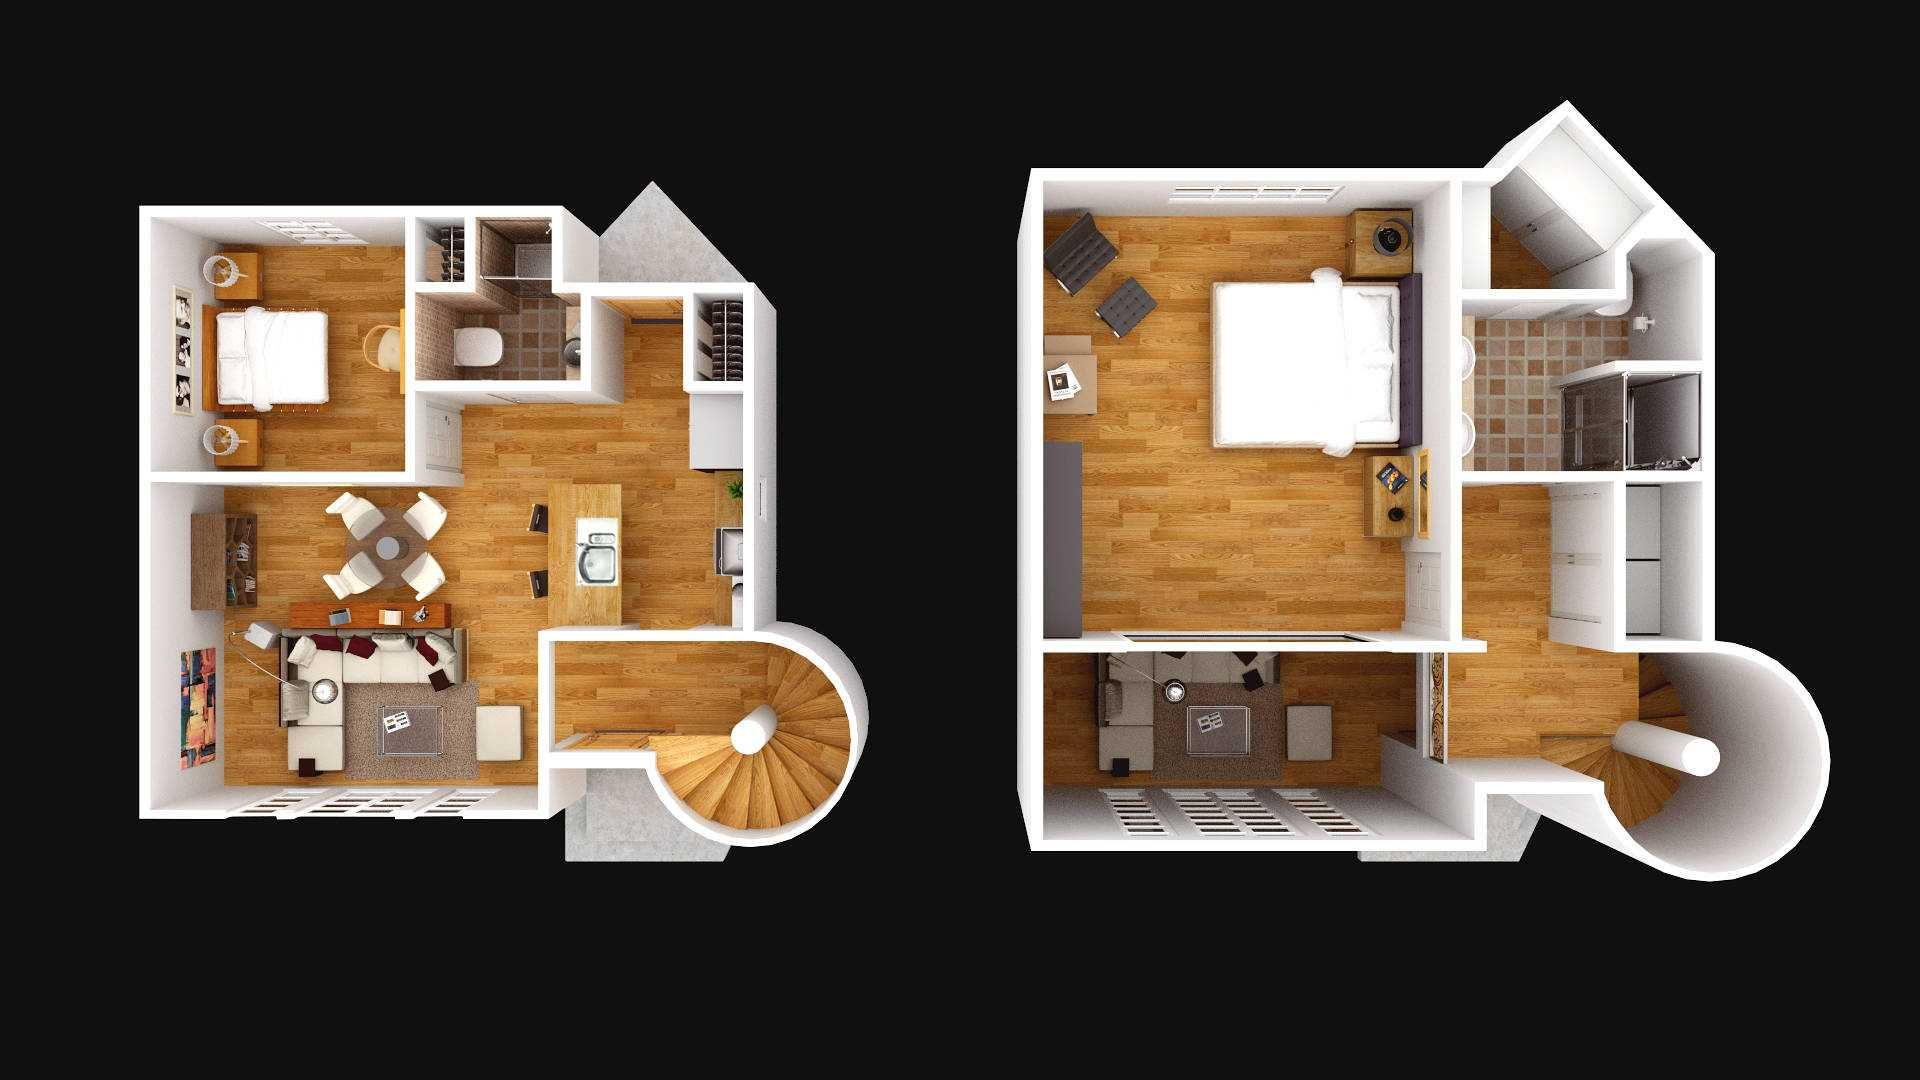 3d 2 Floor House Plan Images Ideas And Small Planhome Design Storey Charming Plans For Powers Lake N 2 Storey House Design House Construction Plan House Design